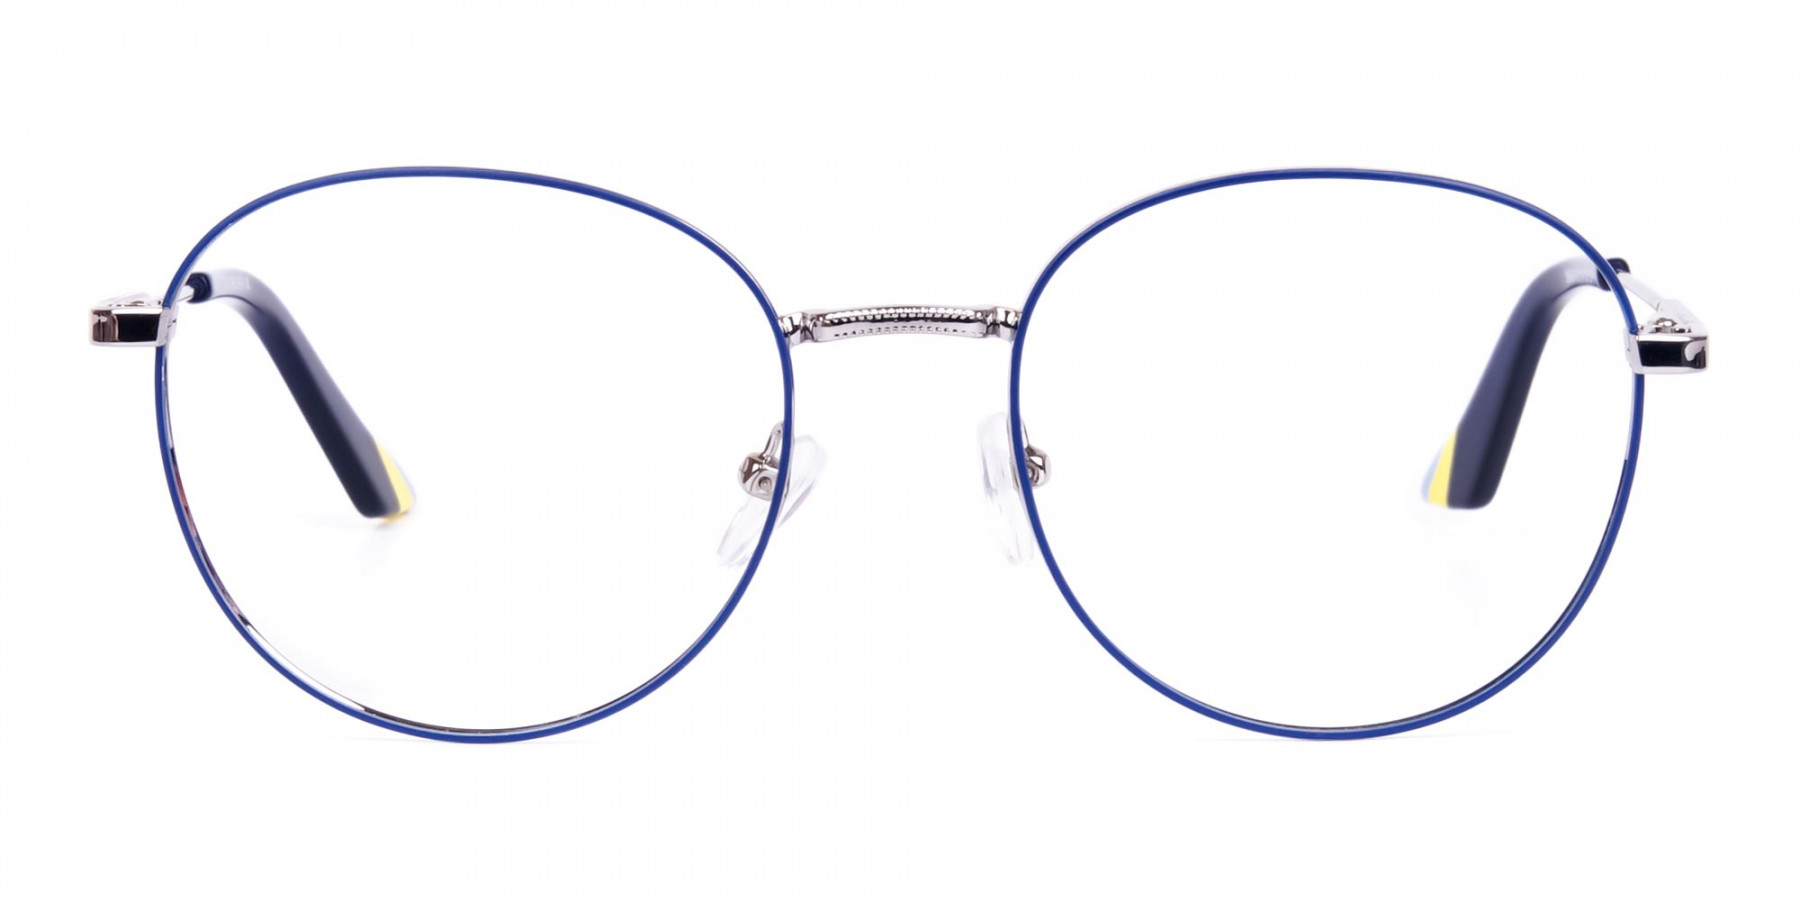 Navy-Blue-and-Silver-Metal-Round-Glasses-1